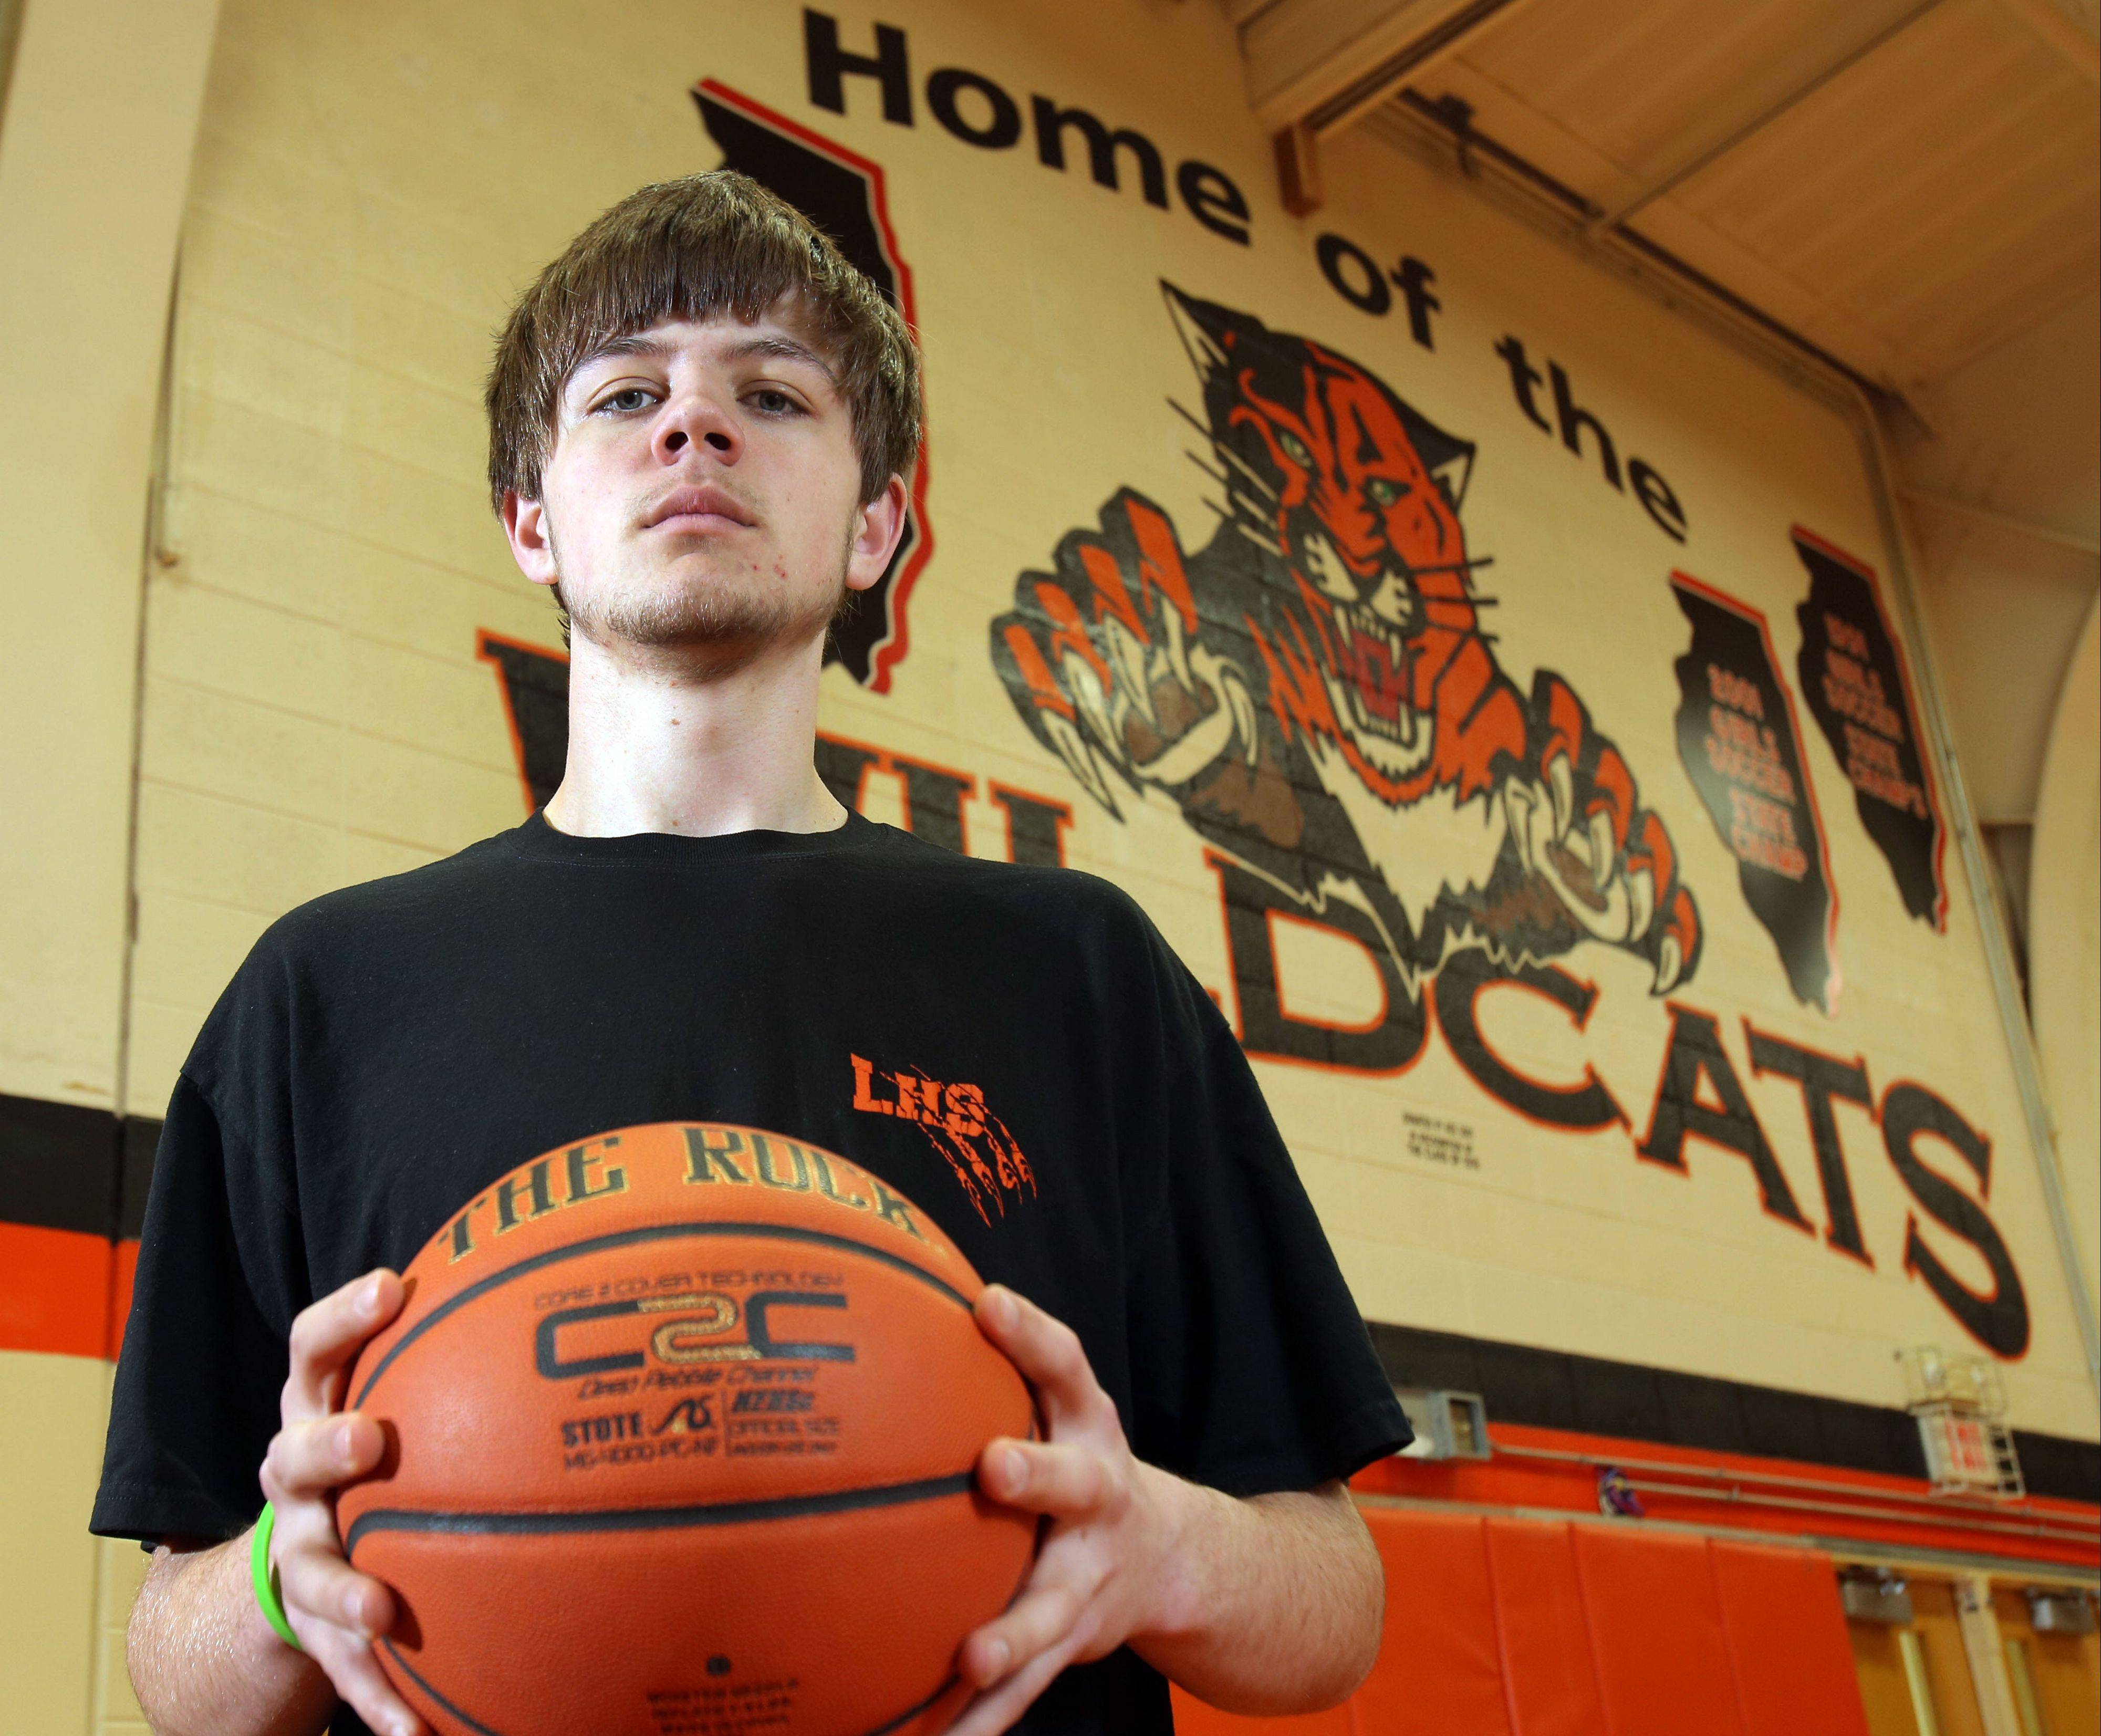 Joe Borcia of Libertyville is developing into an very impressive player as one of the better big men in the North Suburban Conference. Sports became a refuge of sorts for Borcia as he coped with the tragic loss of his younger brother Tony, who was killed in a boating accident in the Chain of Lakes two summers ago.